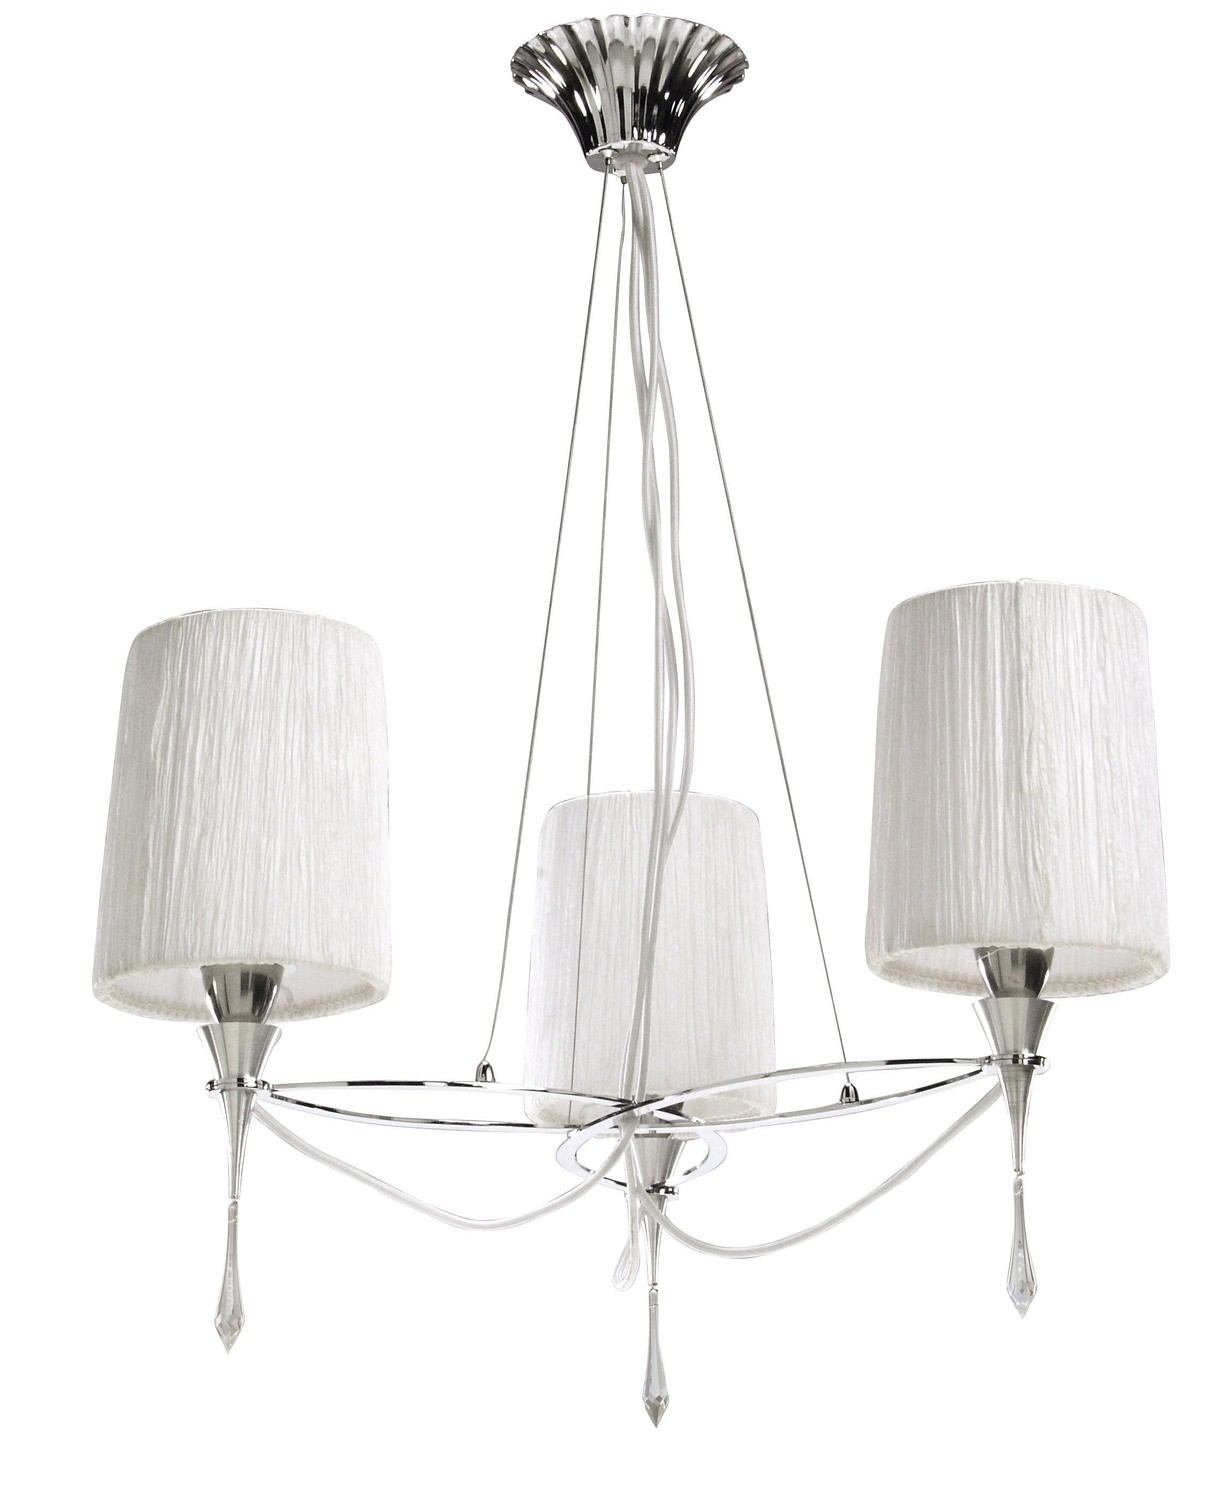 Lucca Pendant 3 Light E27, Polished Chrome With White Shades & Clear Crystal